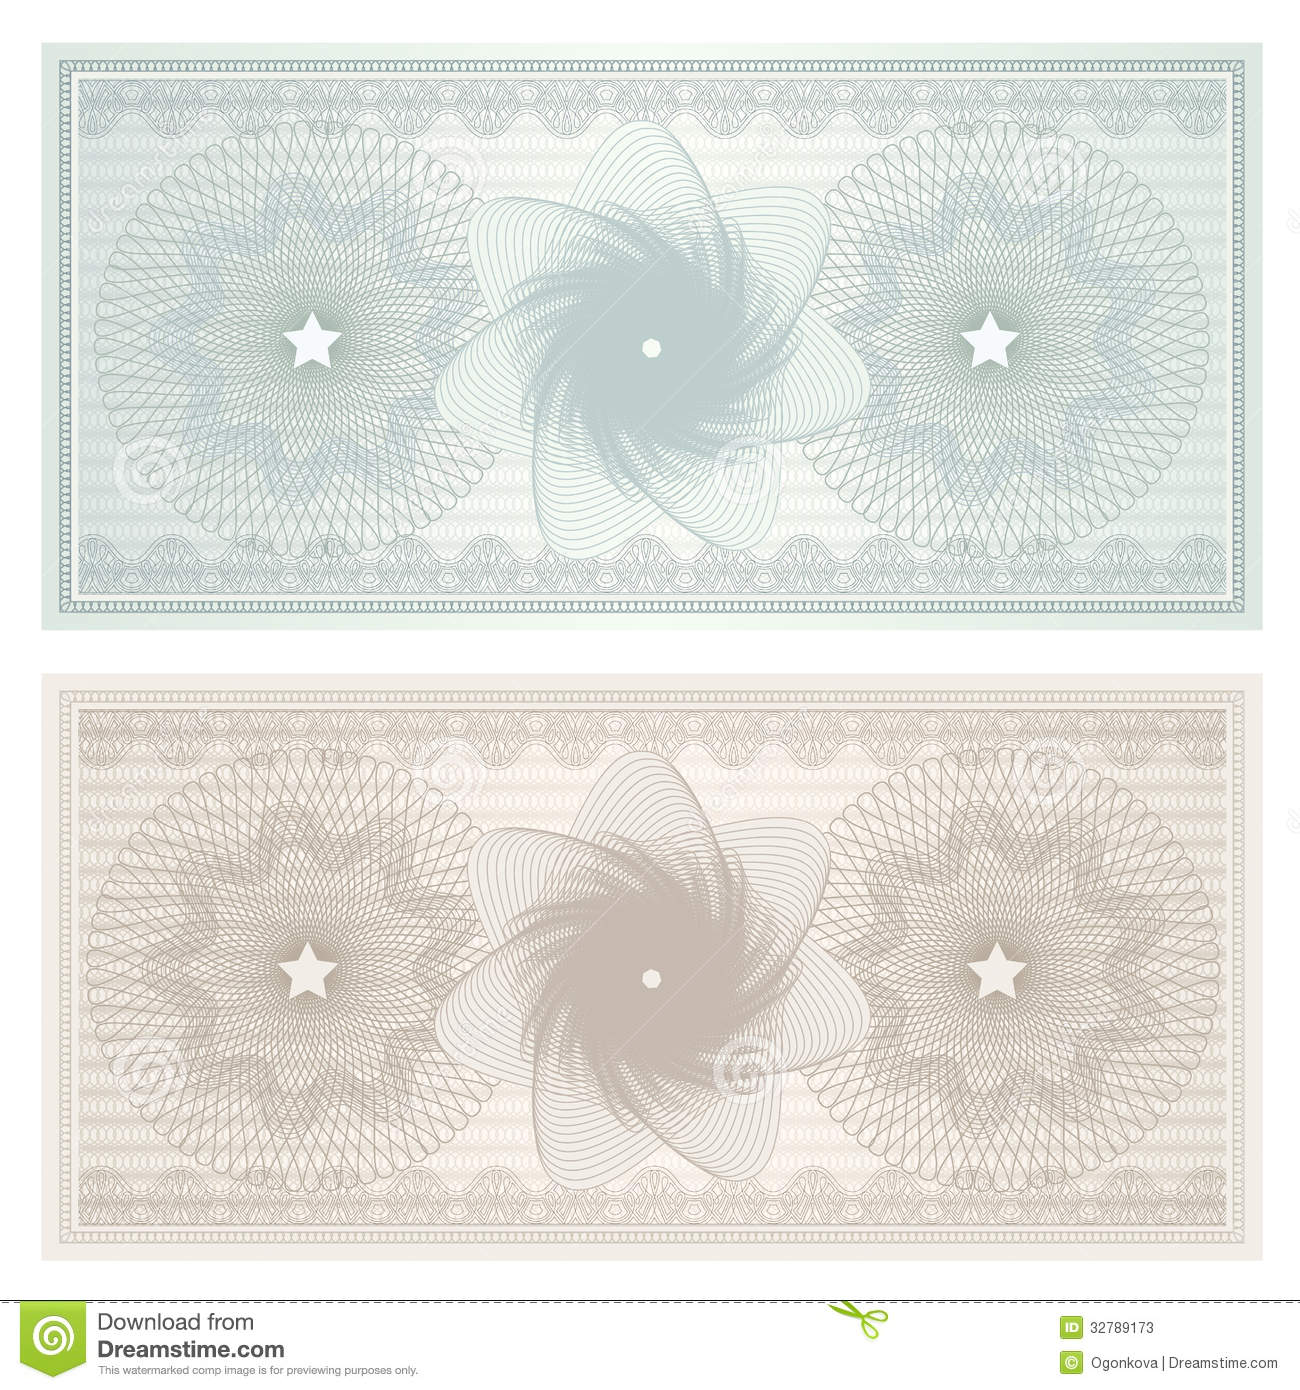 Gift certificate (Voucher, coupon). Pattern